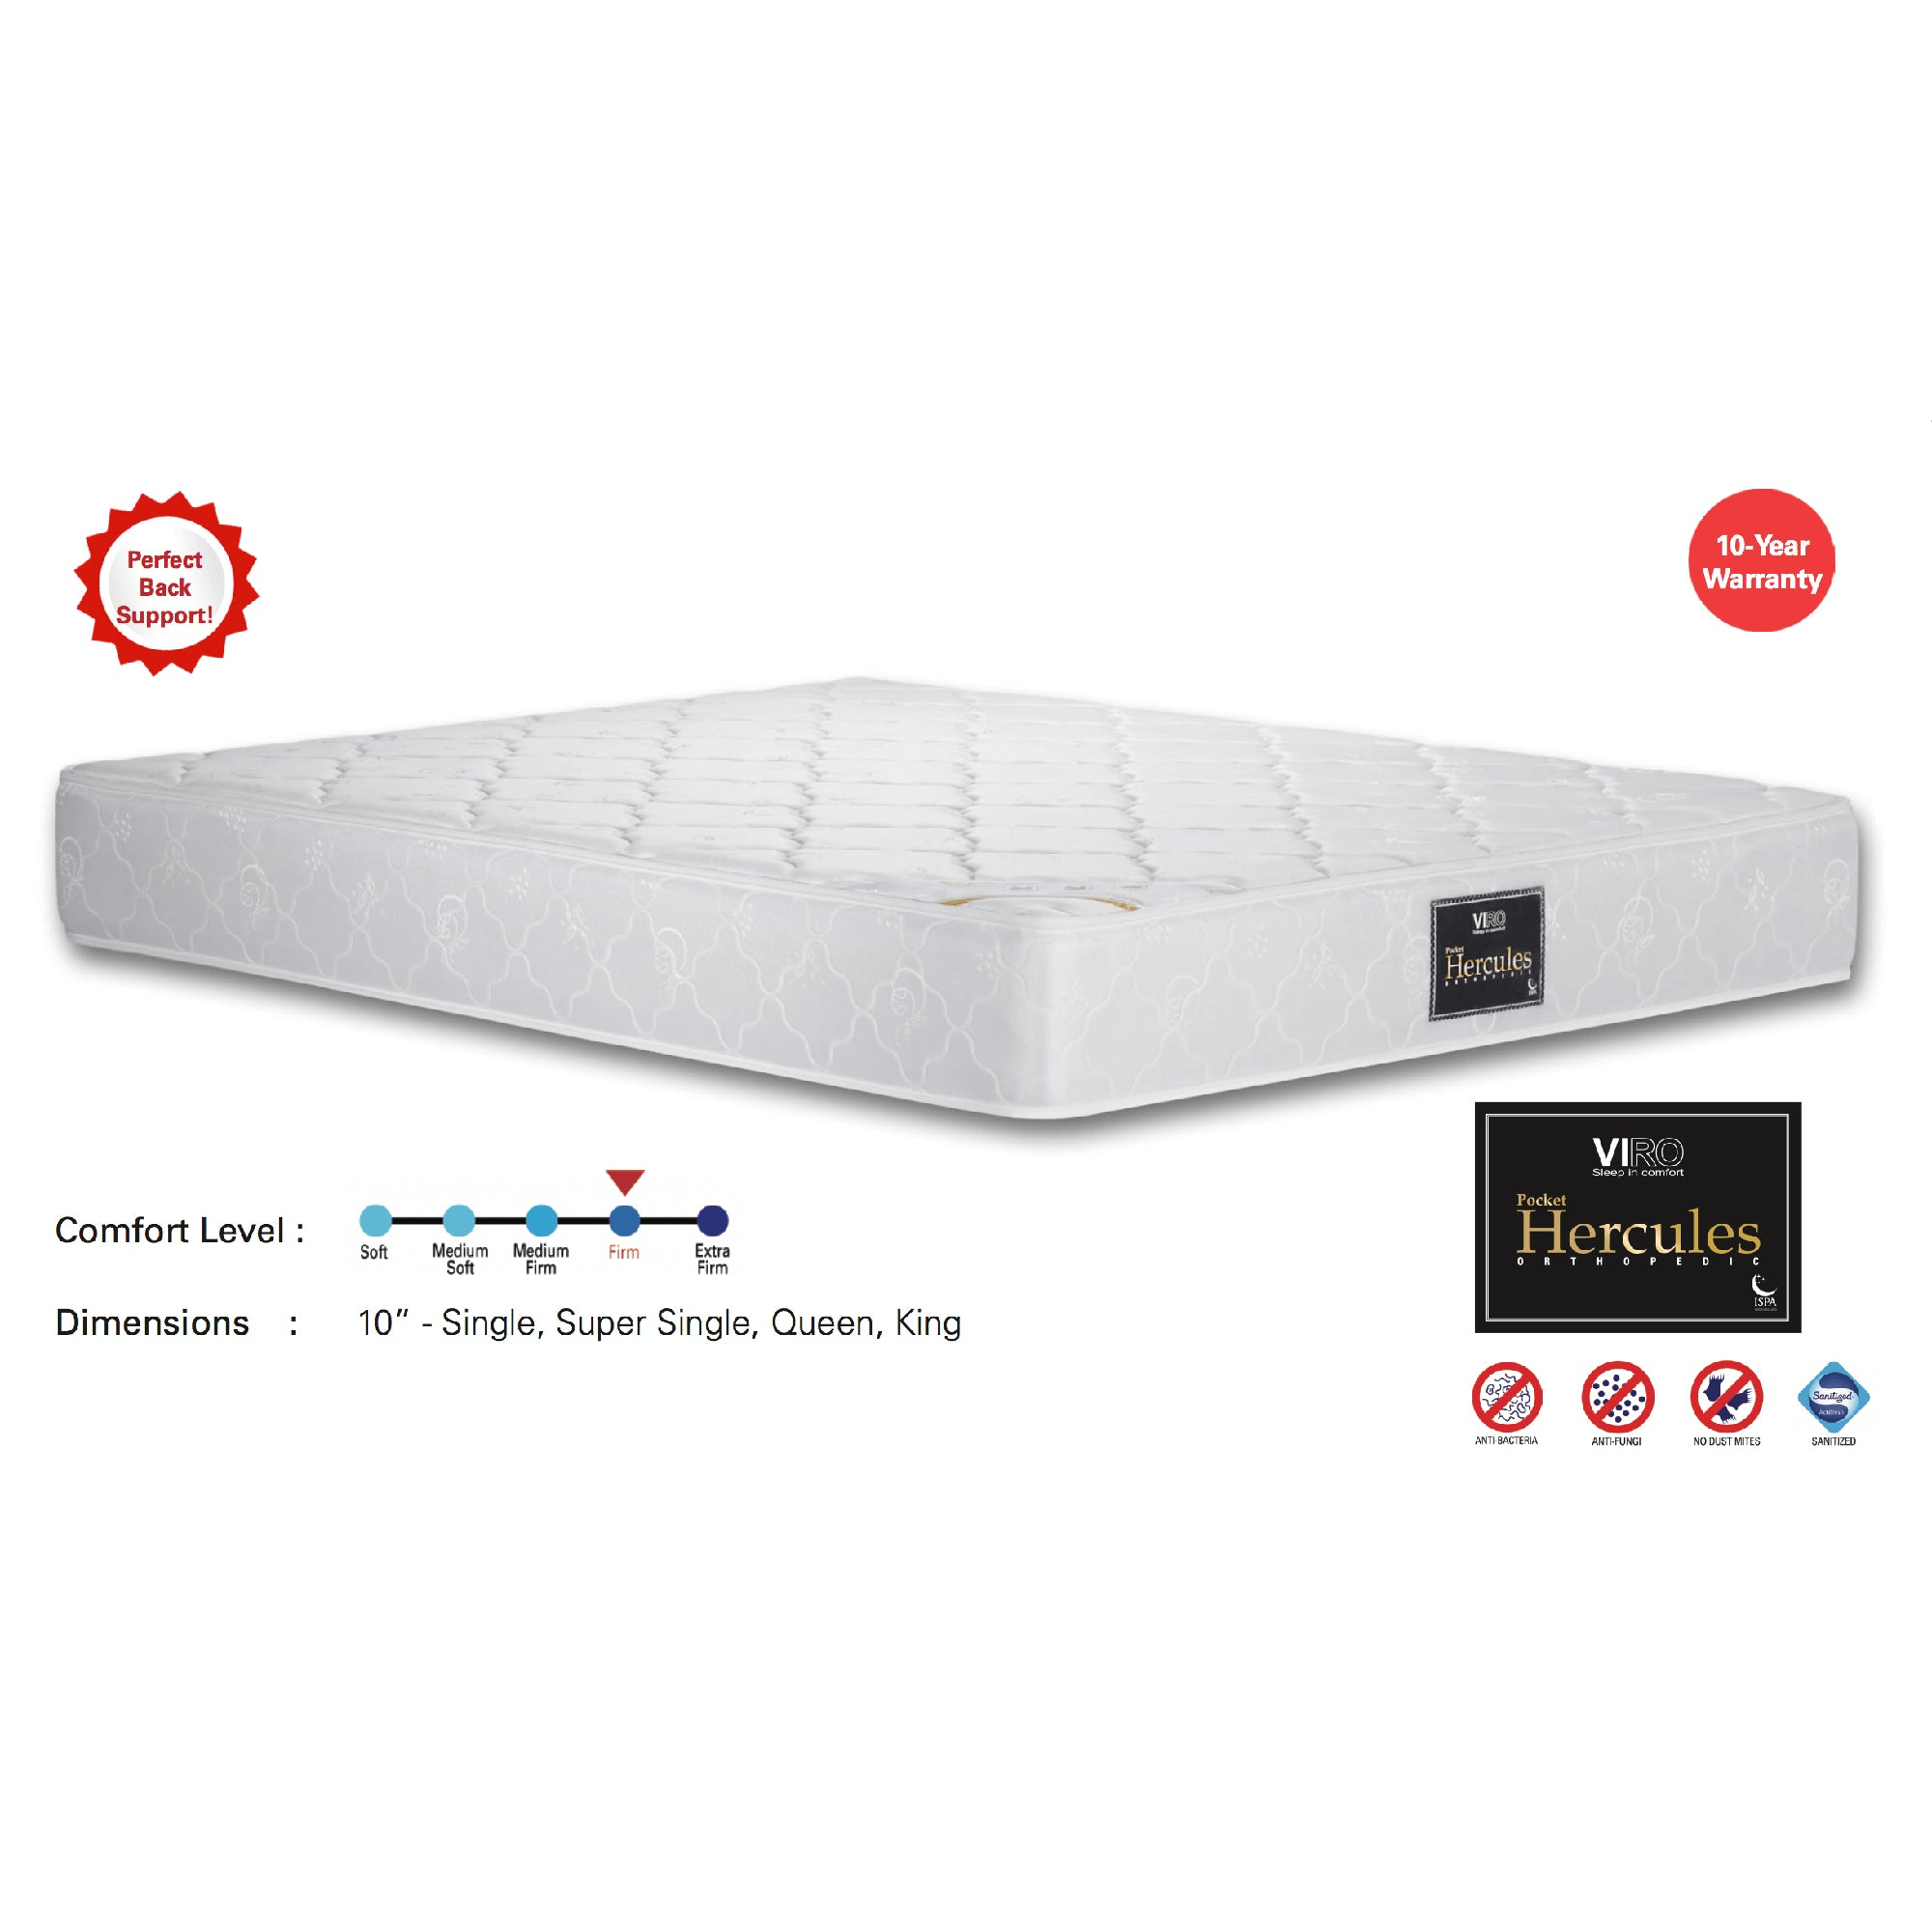 Viro Pocket Hercules Spring Mattress (3.5 Feet Super Single Size x 10